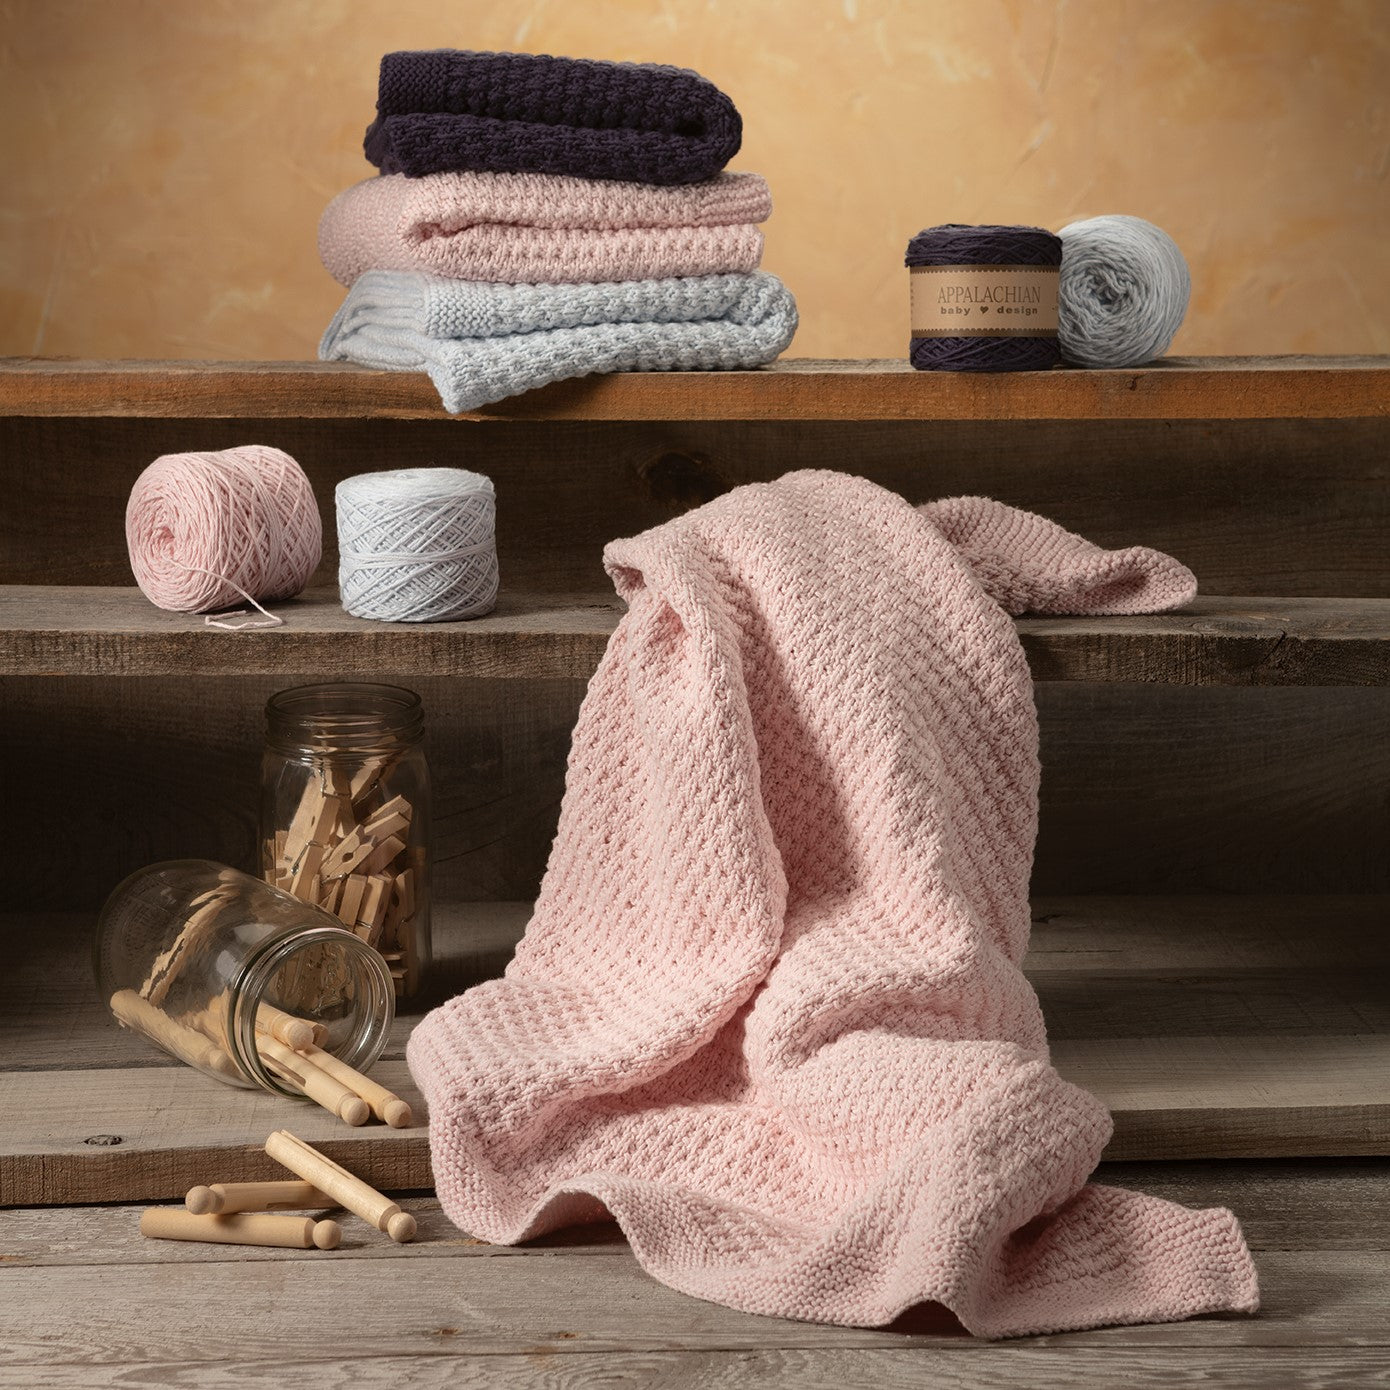 Soft pink textured-knit baby blanket draped on rustic 3-shelf bookcase with old-fashioned clothes pegs spilling from a glass jar on the bottom shelf and three baby blankets of the same pattern in blue, ecru, and pink folded on the top shelf.